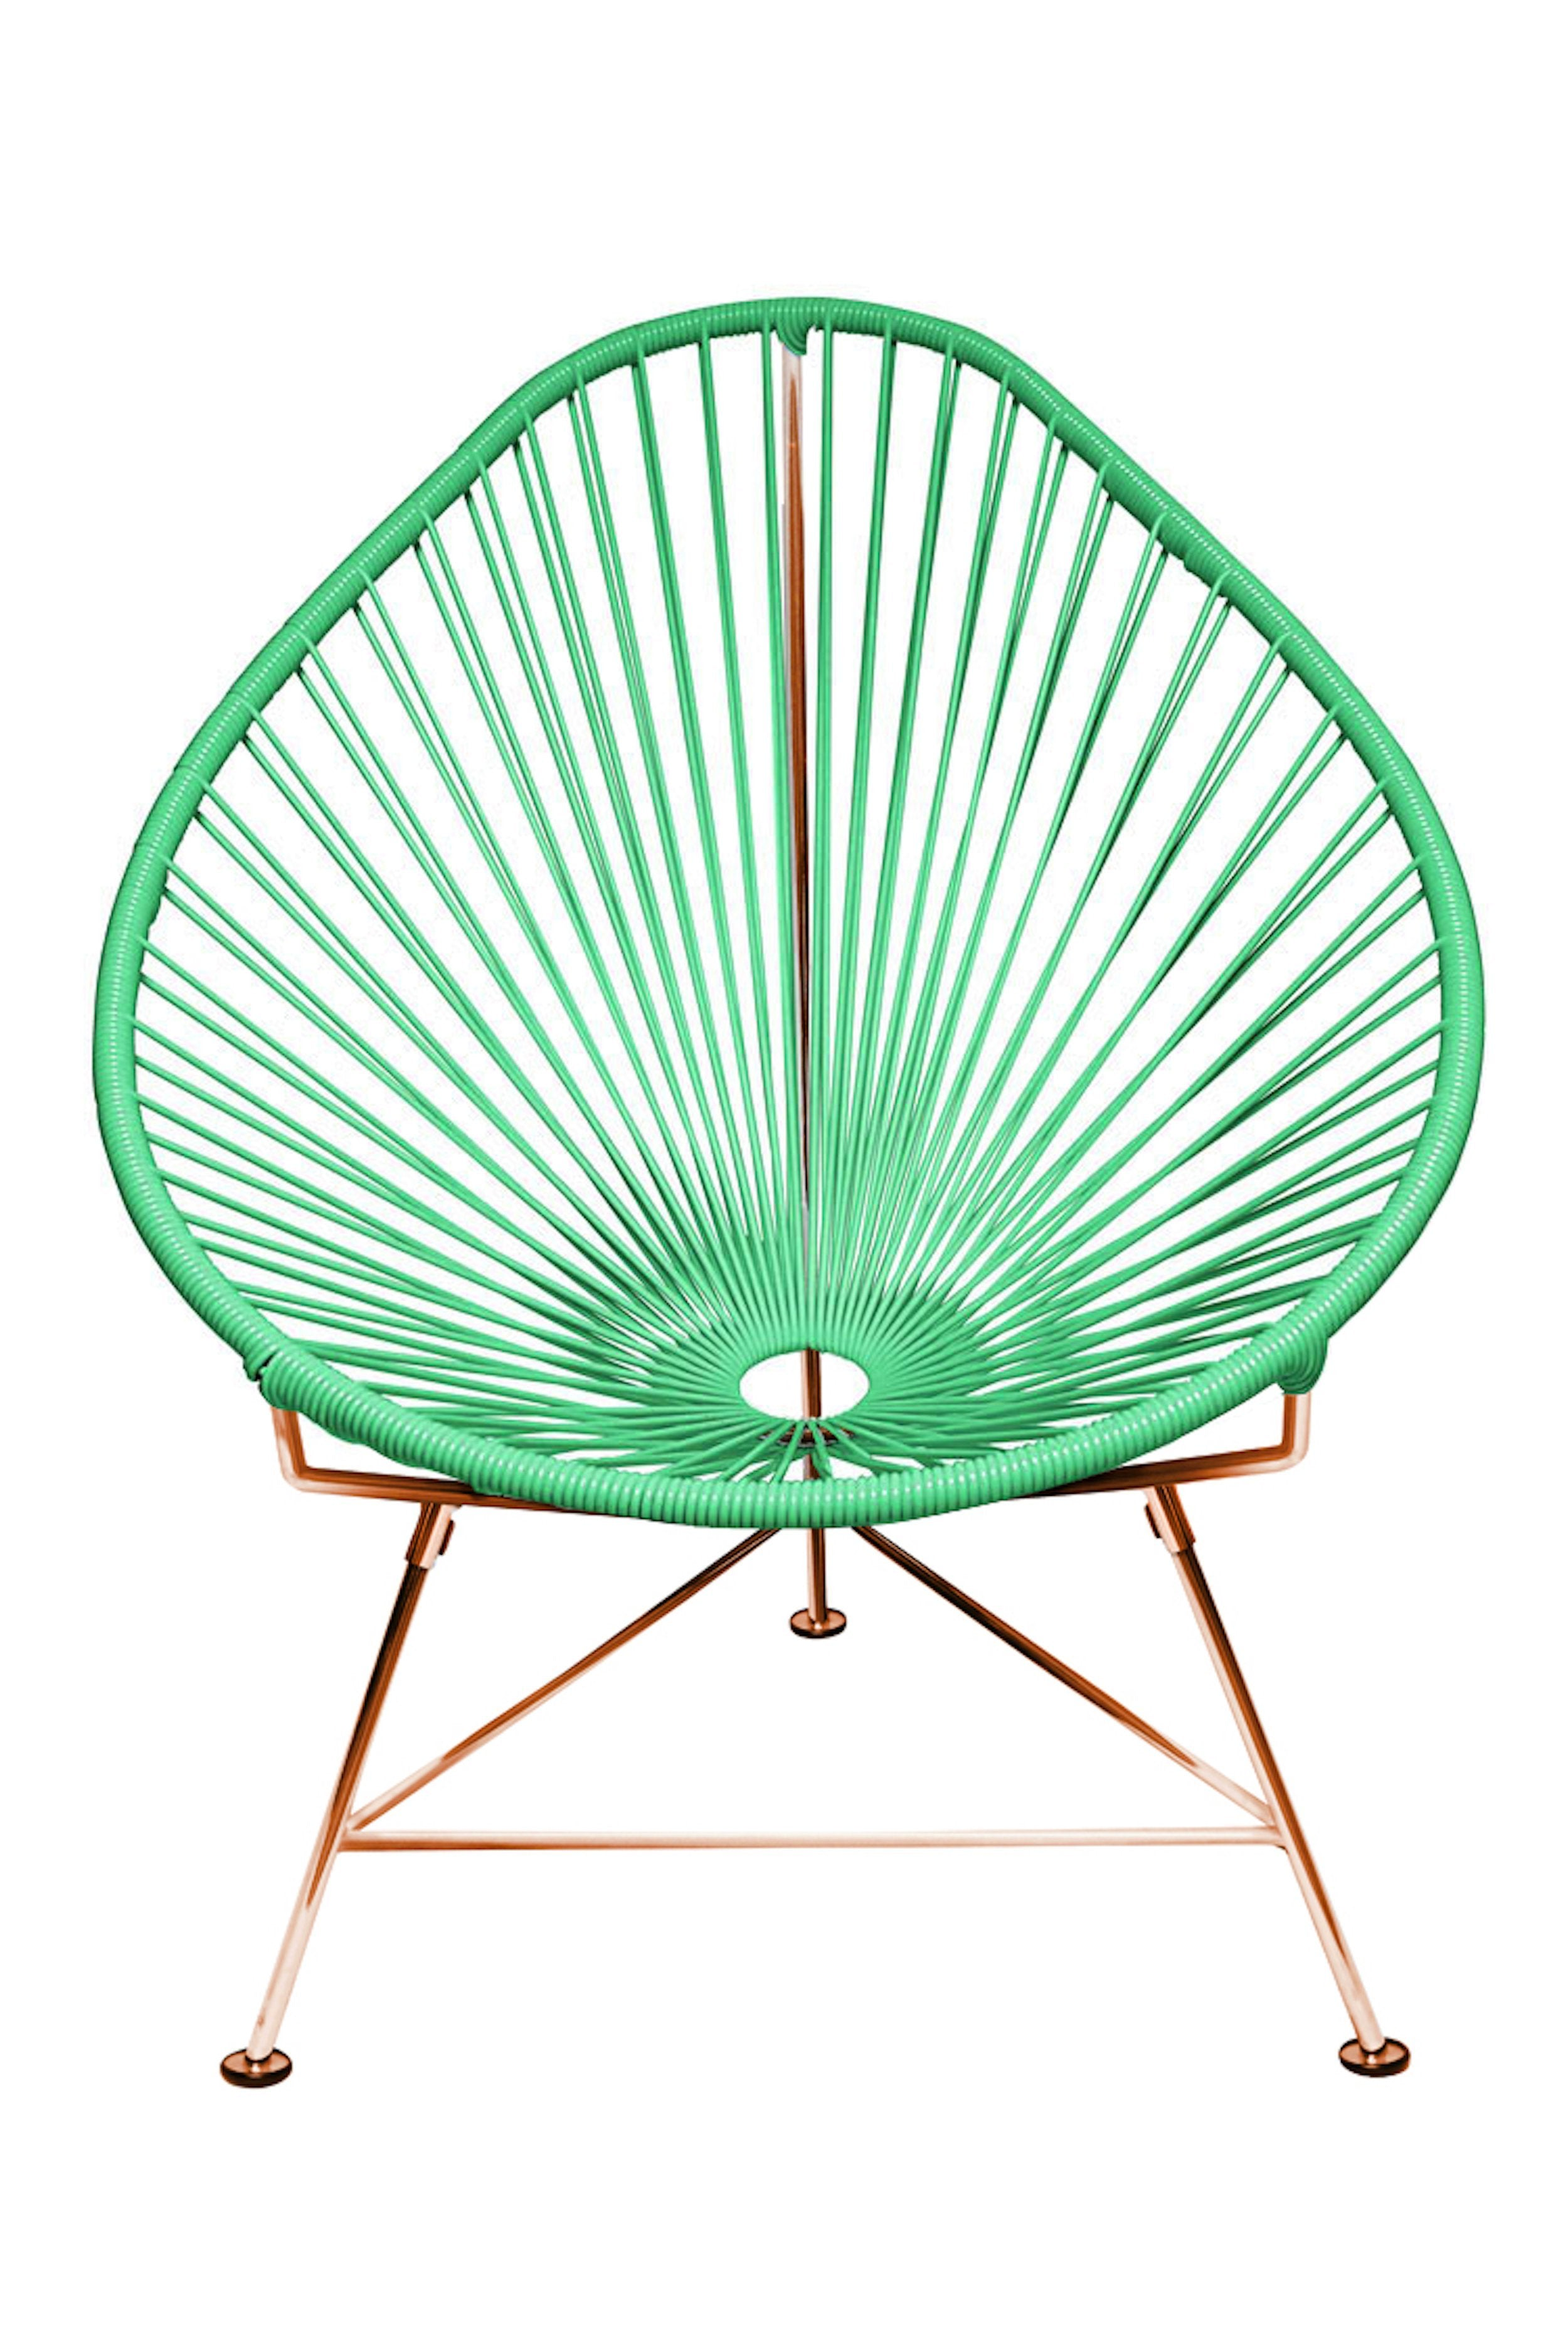 Sensational Buy Acapulco Chair On Copper Frame At Lifeix Design For Only Andrewgaddart Wooden Chair Designs For Living Room Andrewgaddartcom